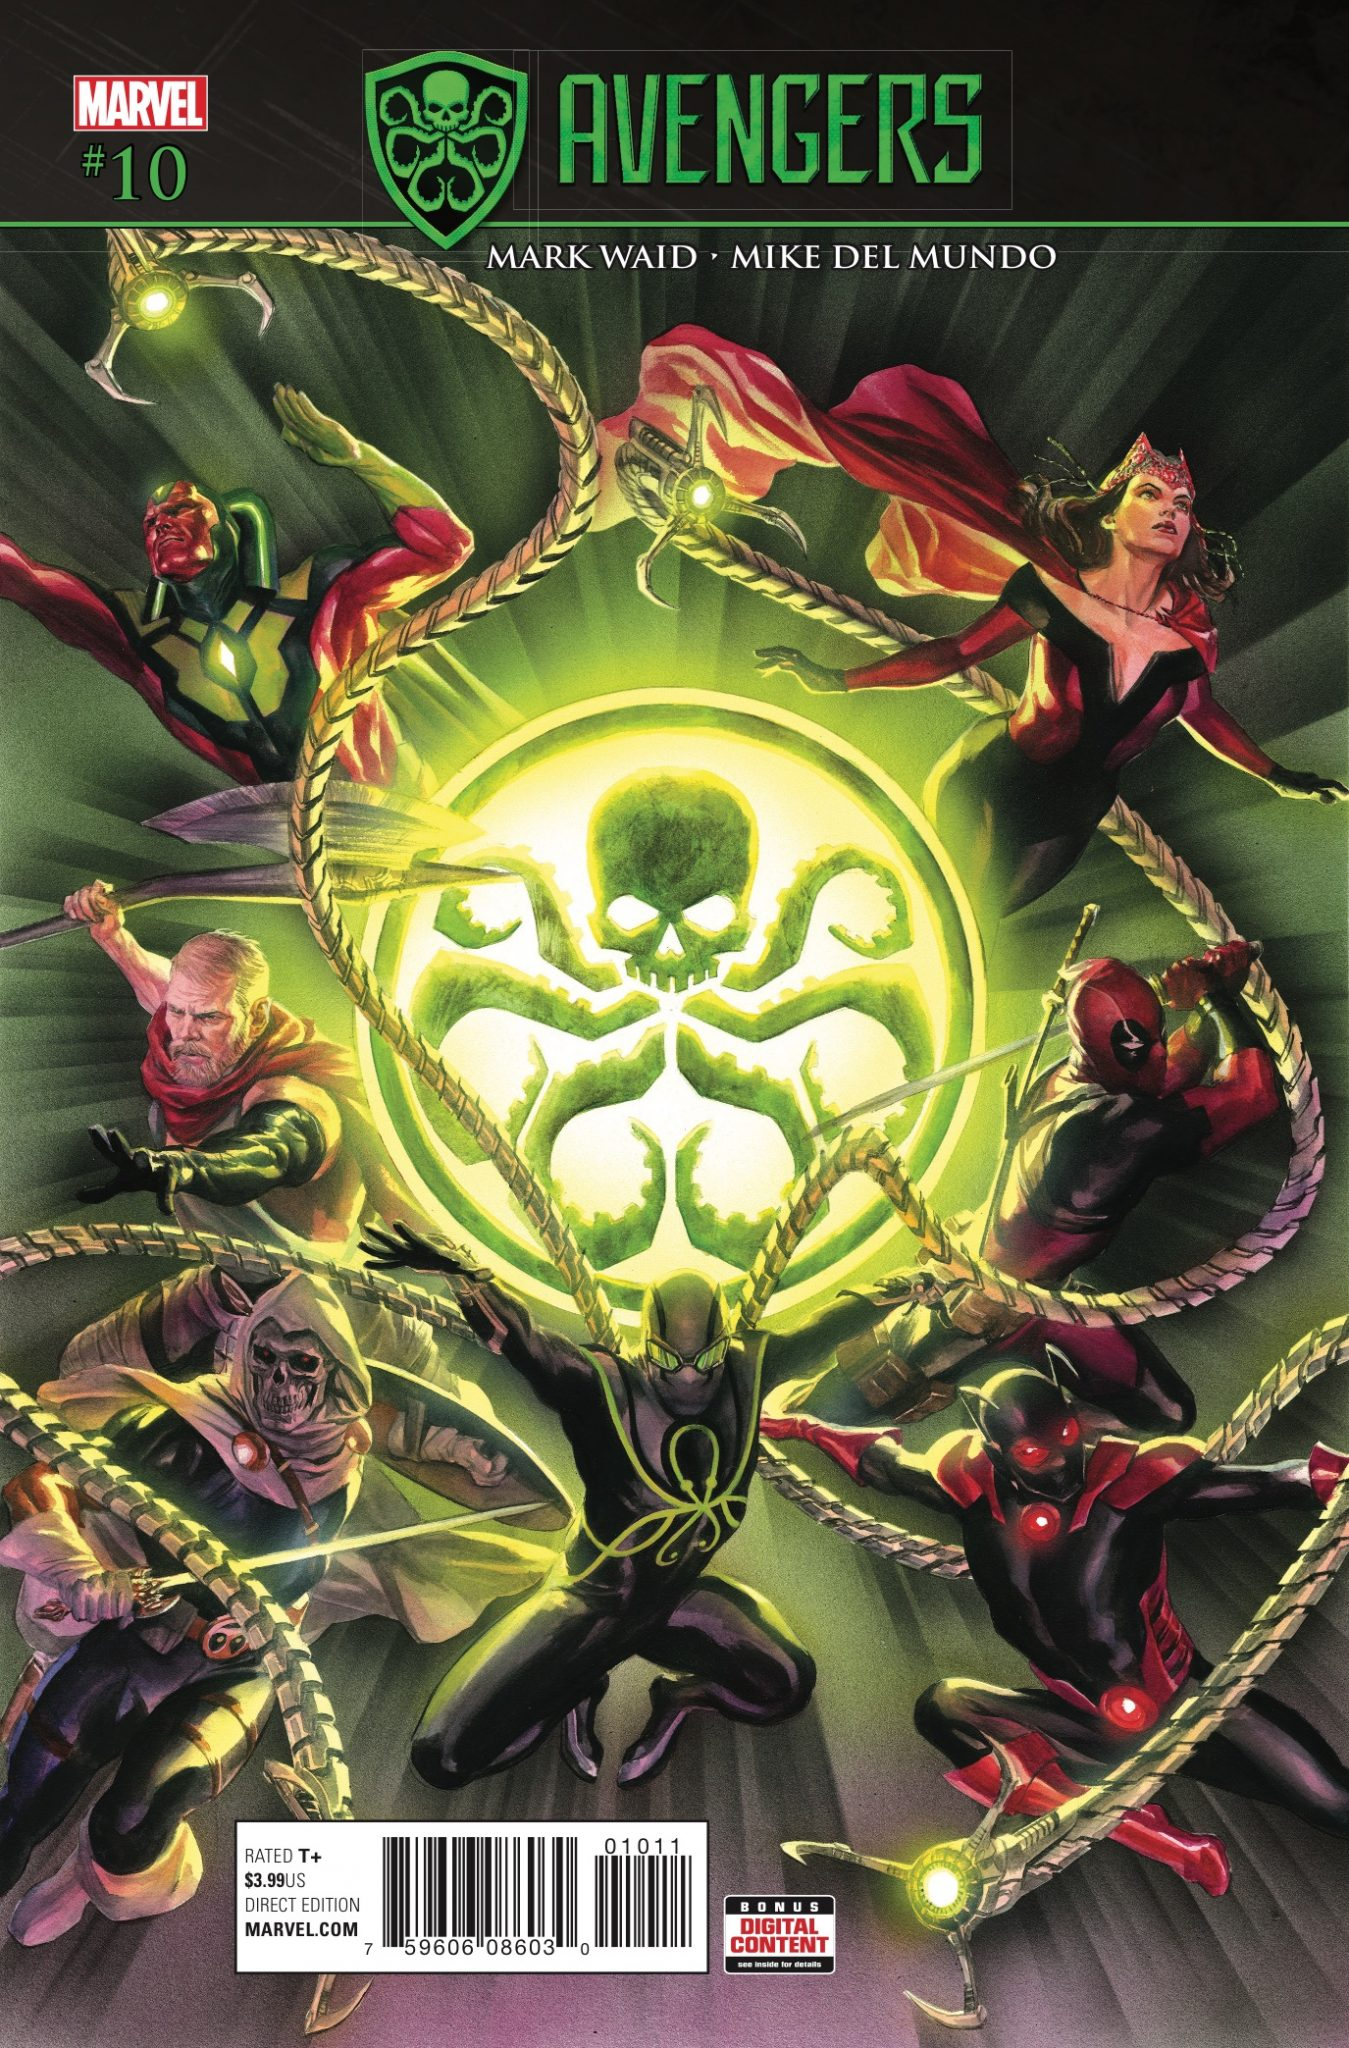 Avengers #10 Review